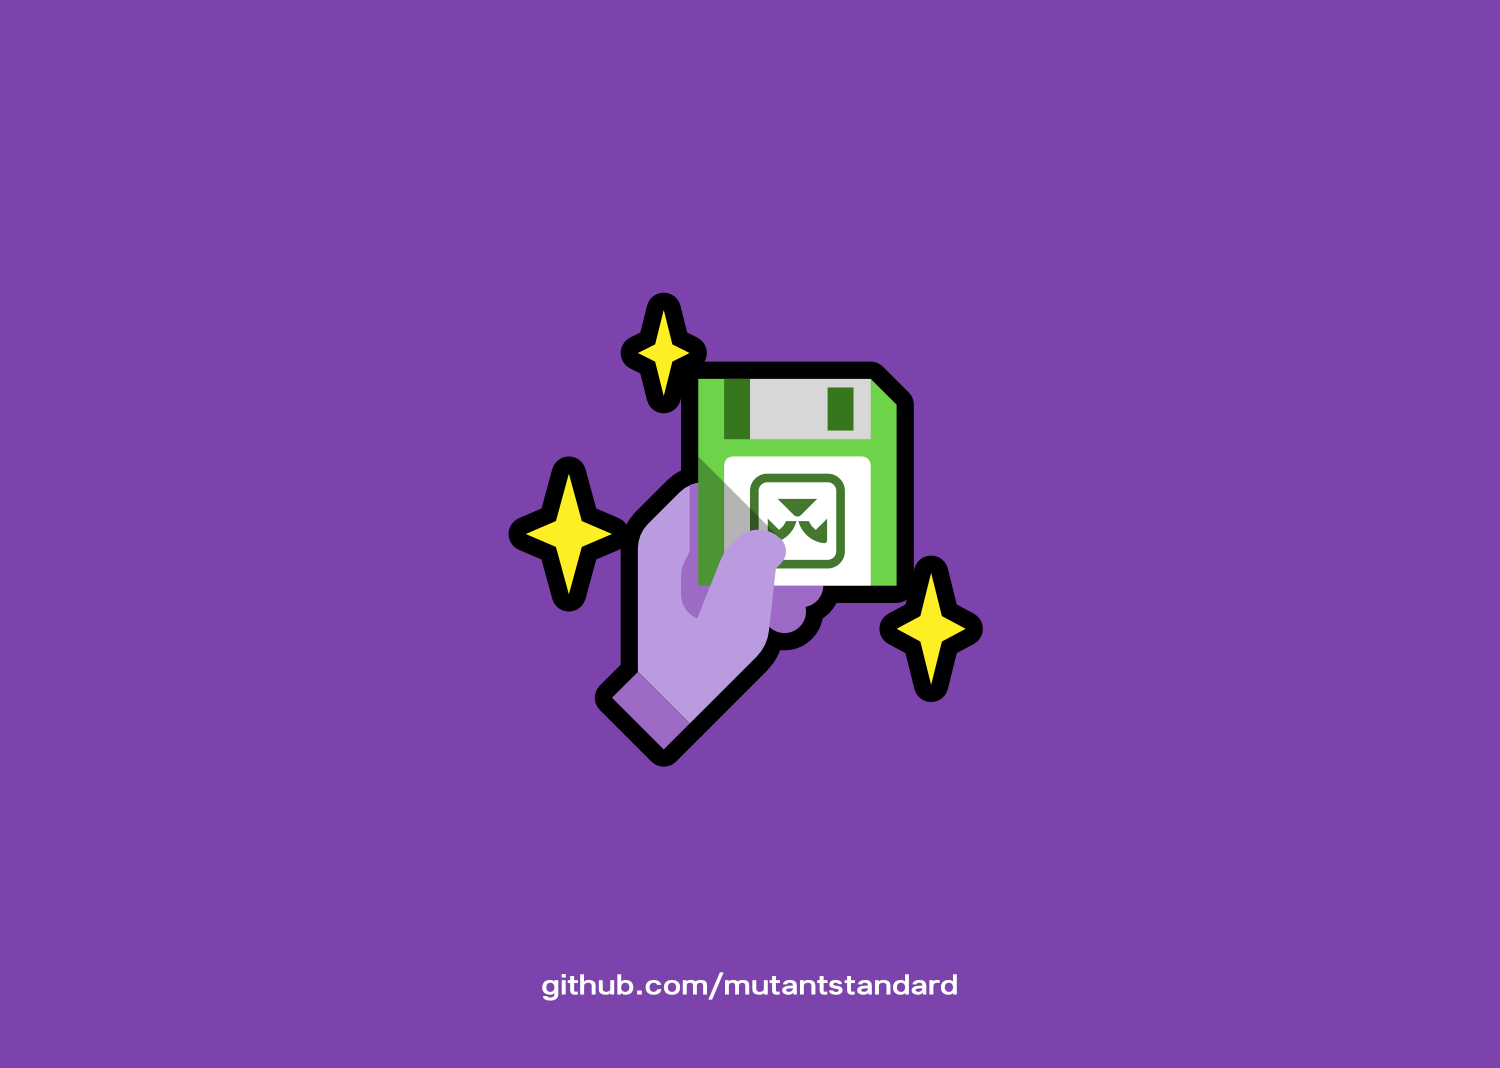 A purple background with a minimalist vector illustration of a purple hand holding up a bright green floppy disk with the Orxporter logo on it. They are surrounded by bright yellow sparkles. At the bottom there's aurl at the bottom for 'github.com/mutantstandard'